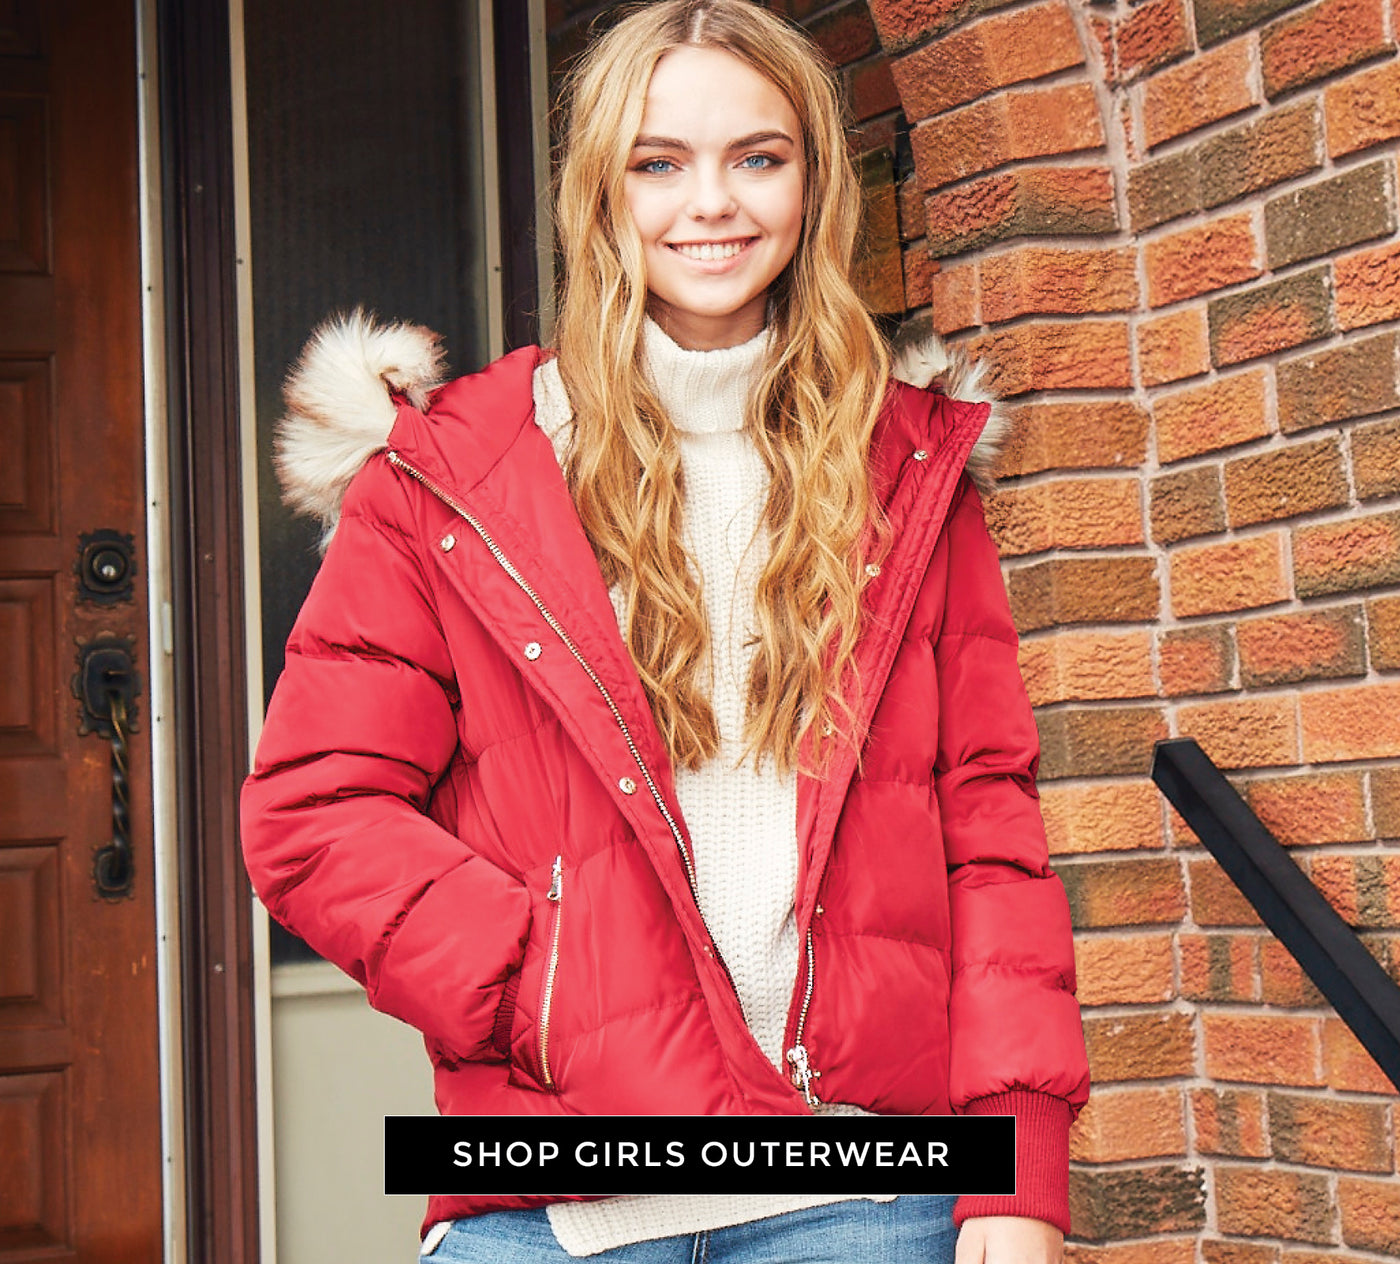 Shop Girls Outerwear